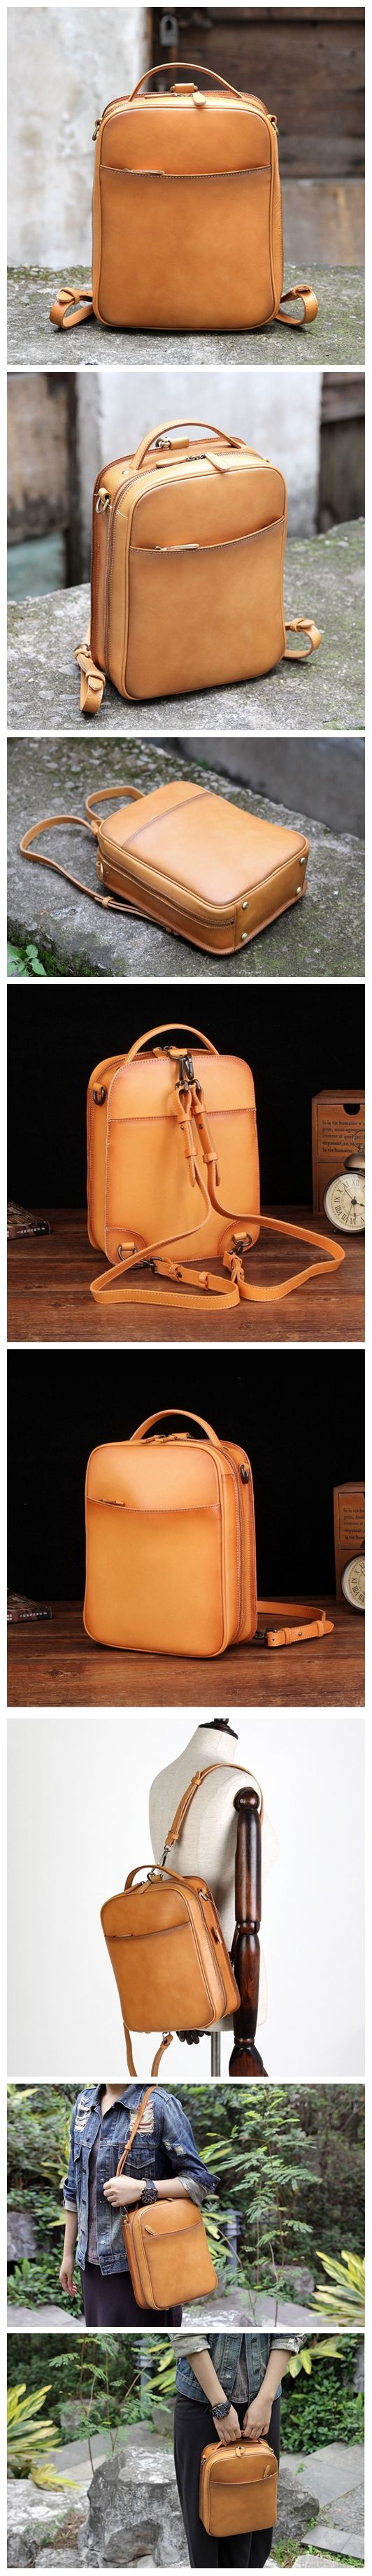 Genuine leather backpack rucksack shoulder bag messenger women's handbag 14085